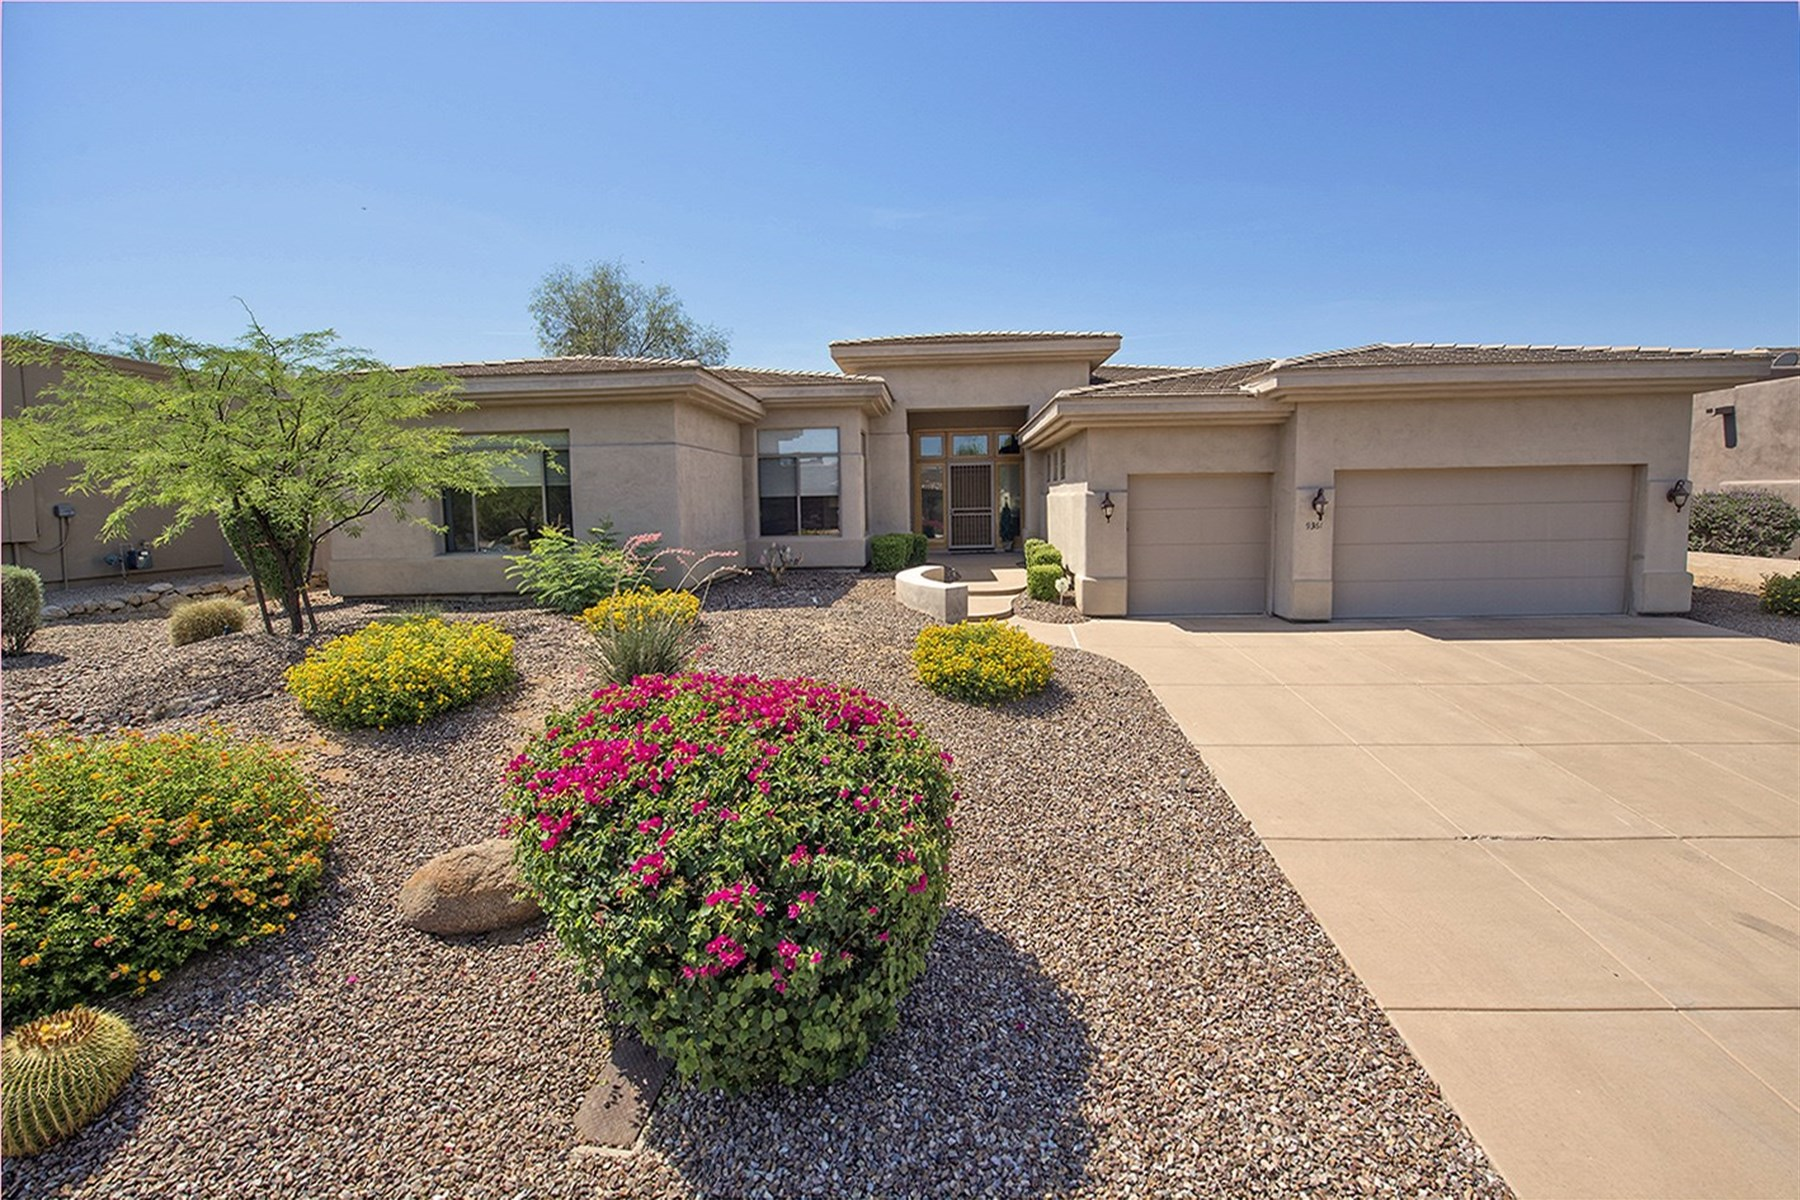 Maison unifamiliale pour l Vente à beautiful single level home in Troon North 9361 E Dale Ln Scottsdale, Arizona, 85262 États-Unis